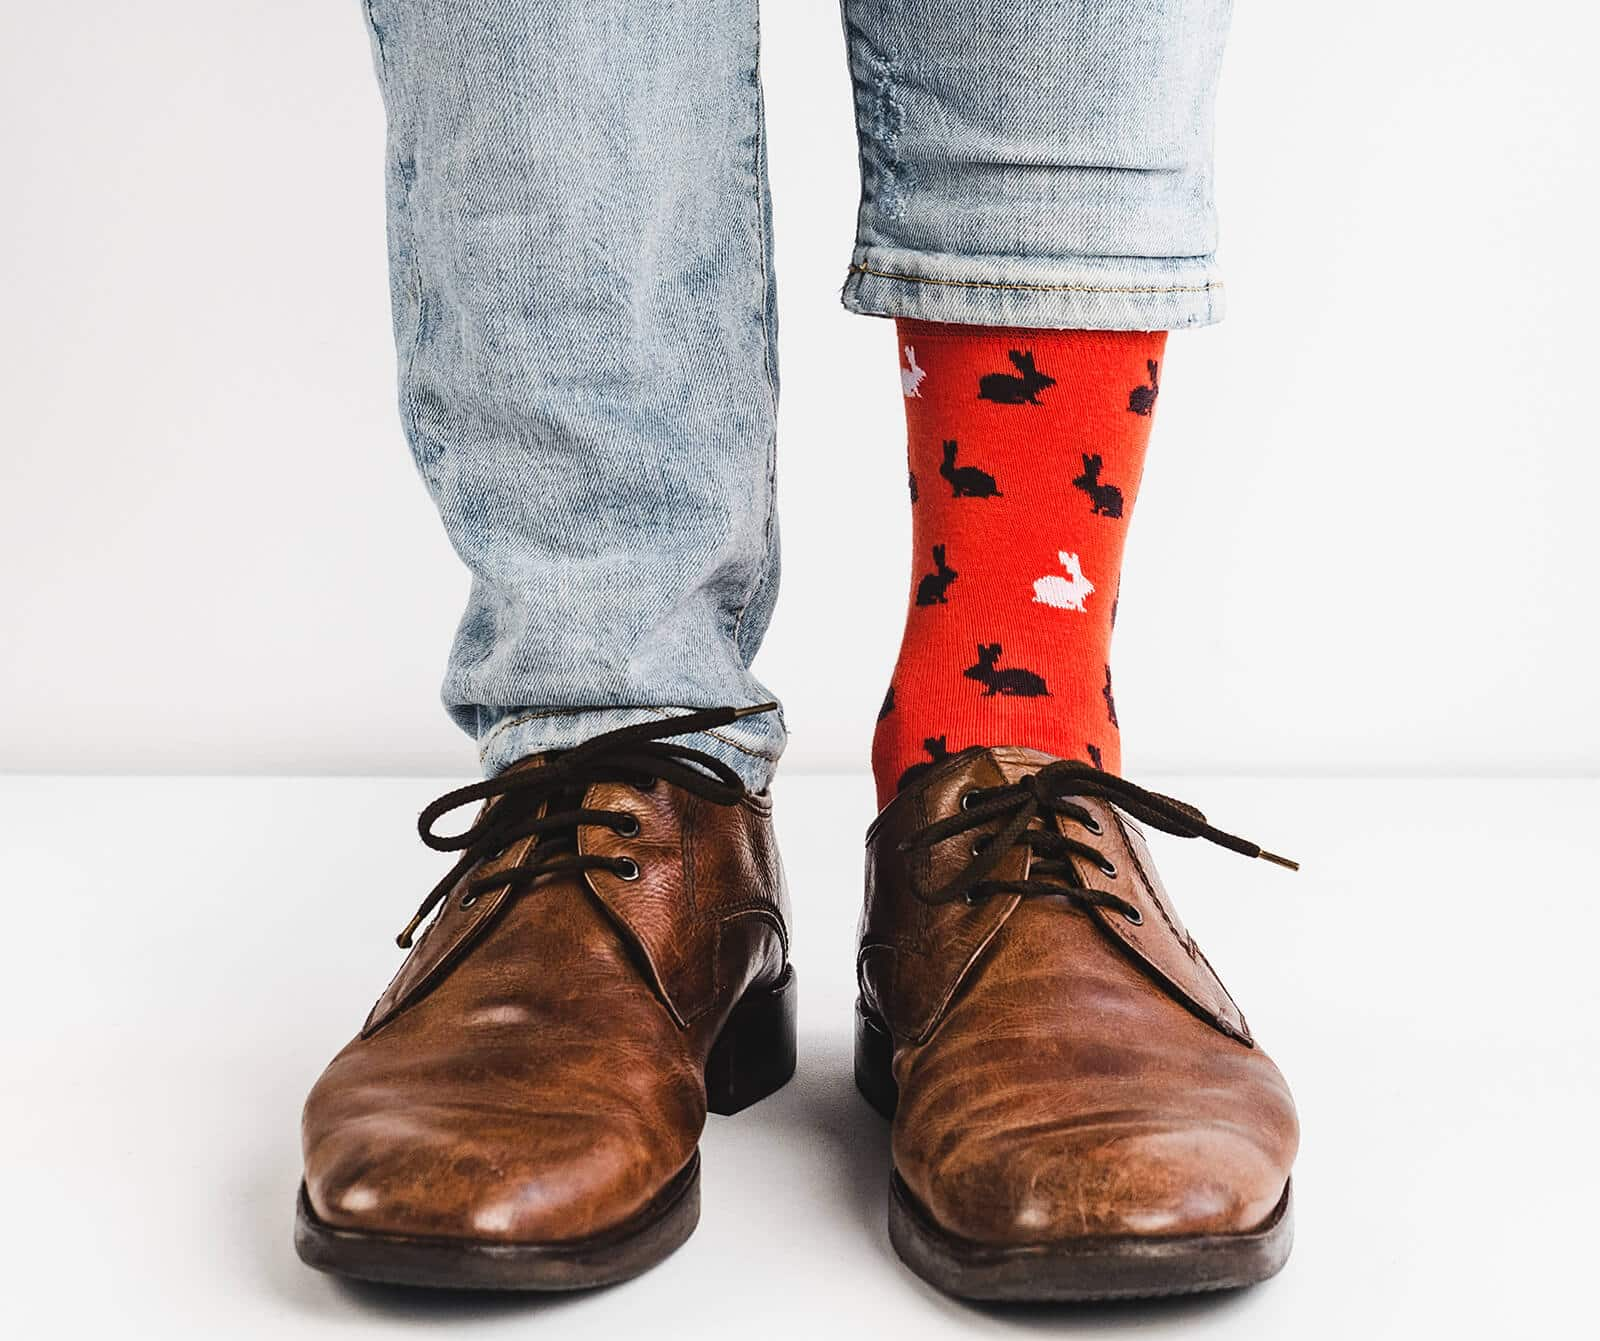 25 Funny and Novelty Socks for Men